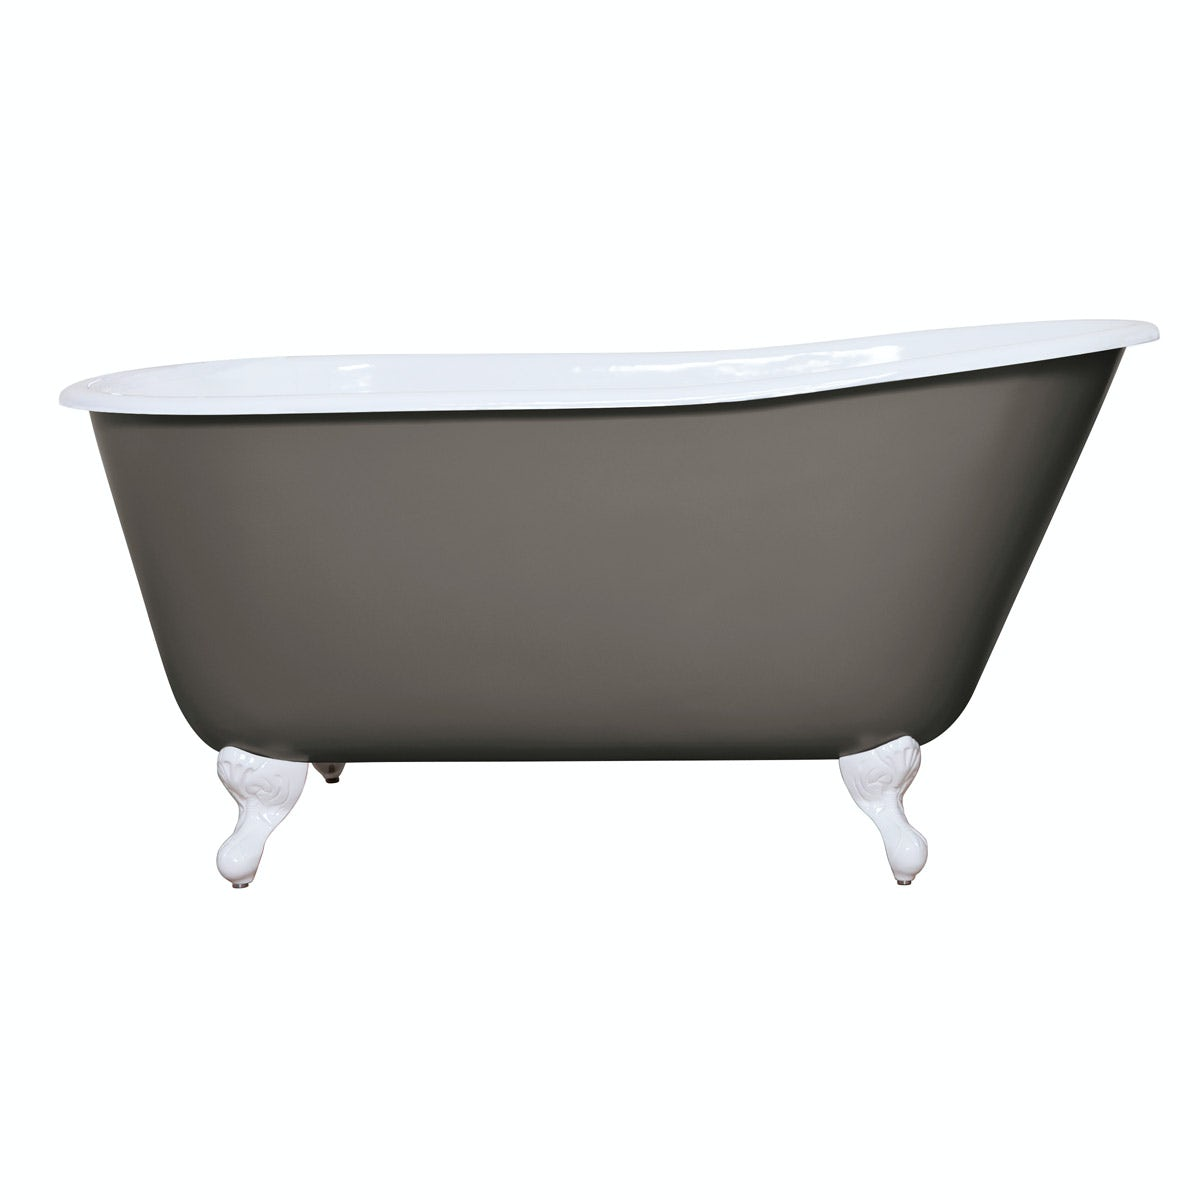 The Bath Co. Warwick keystone grey cast iron bath